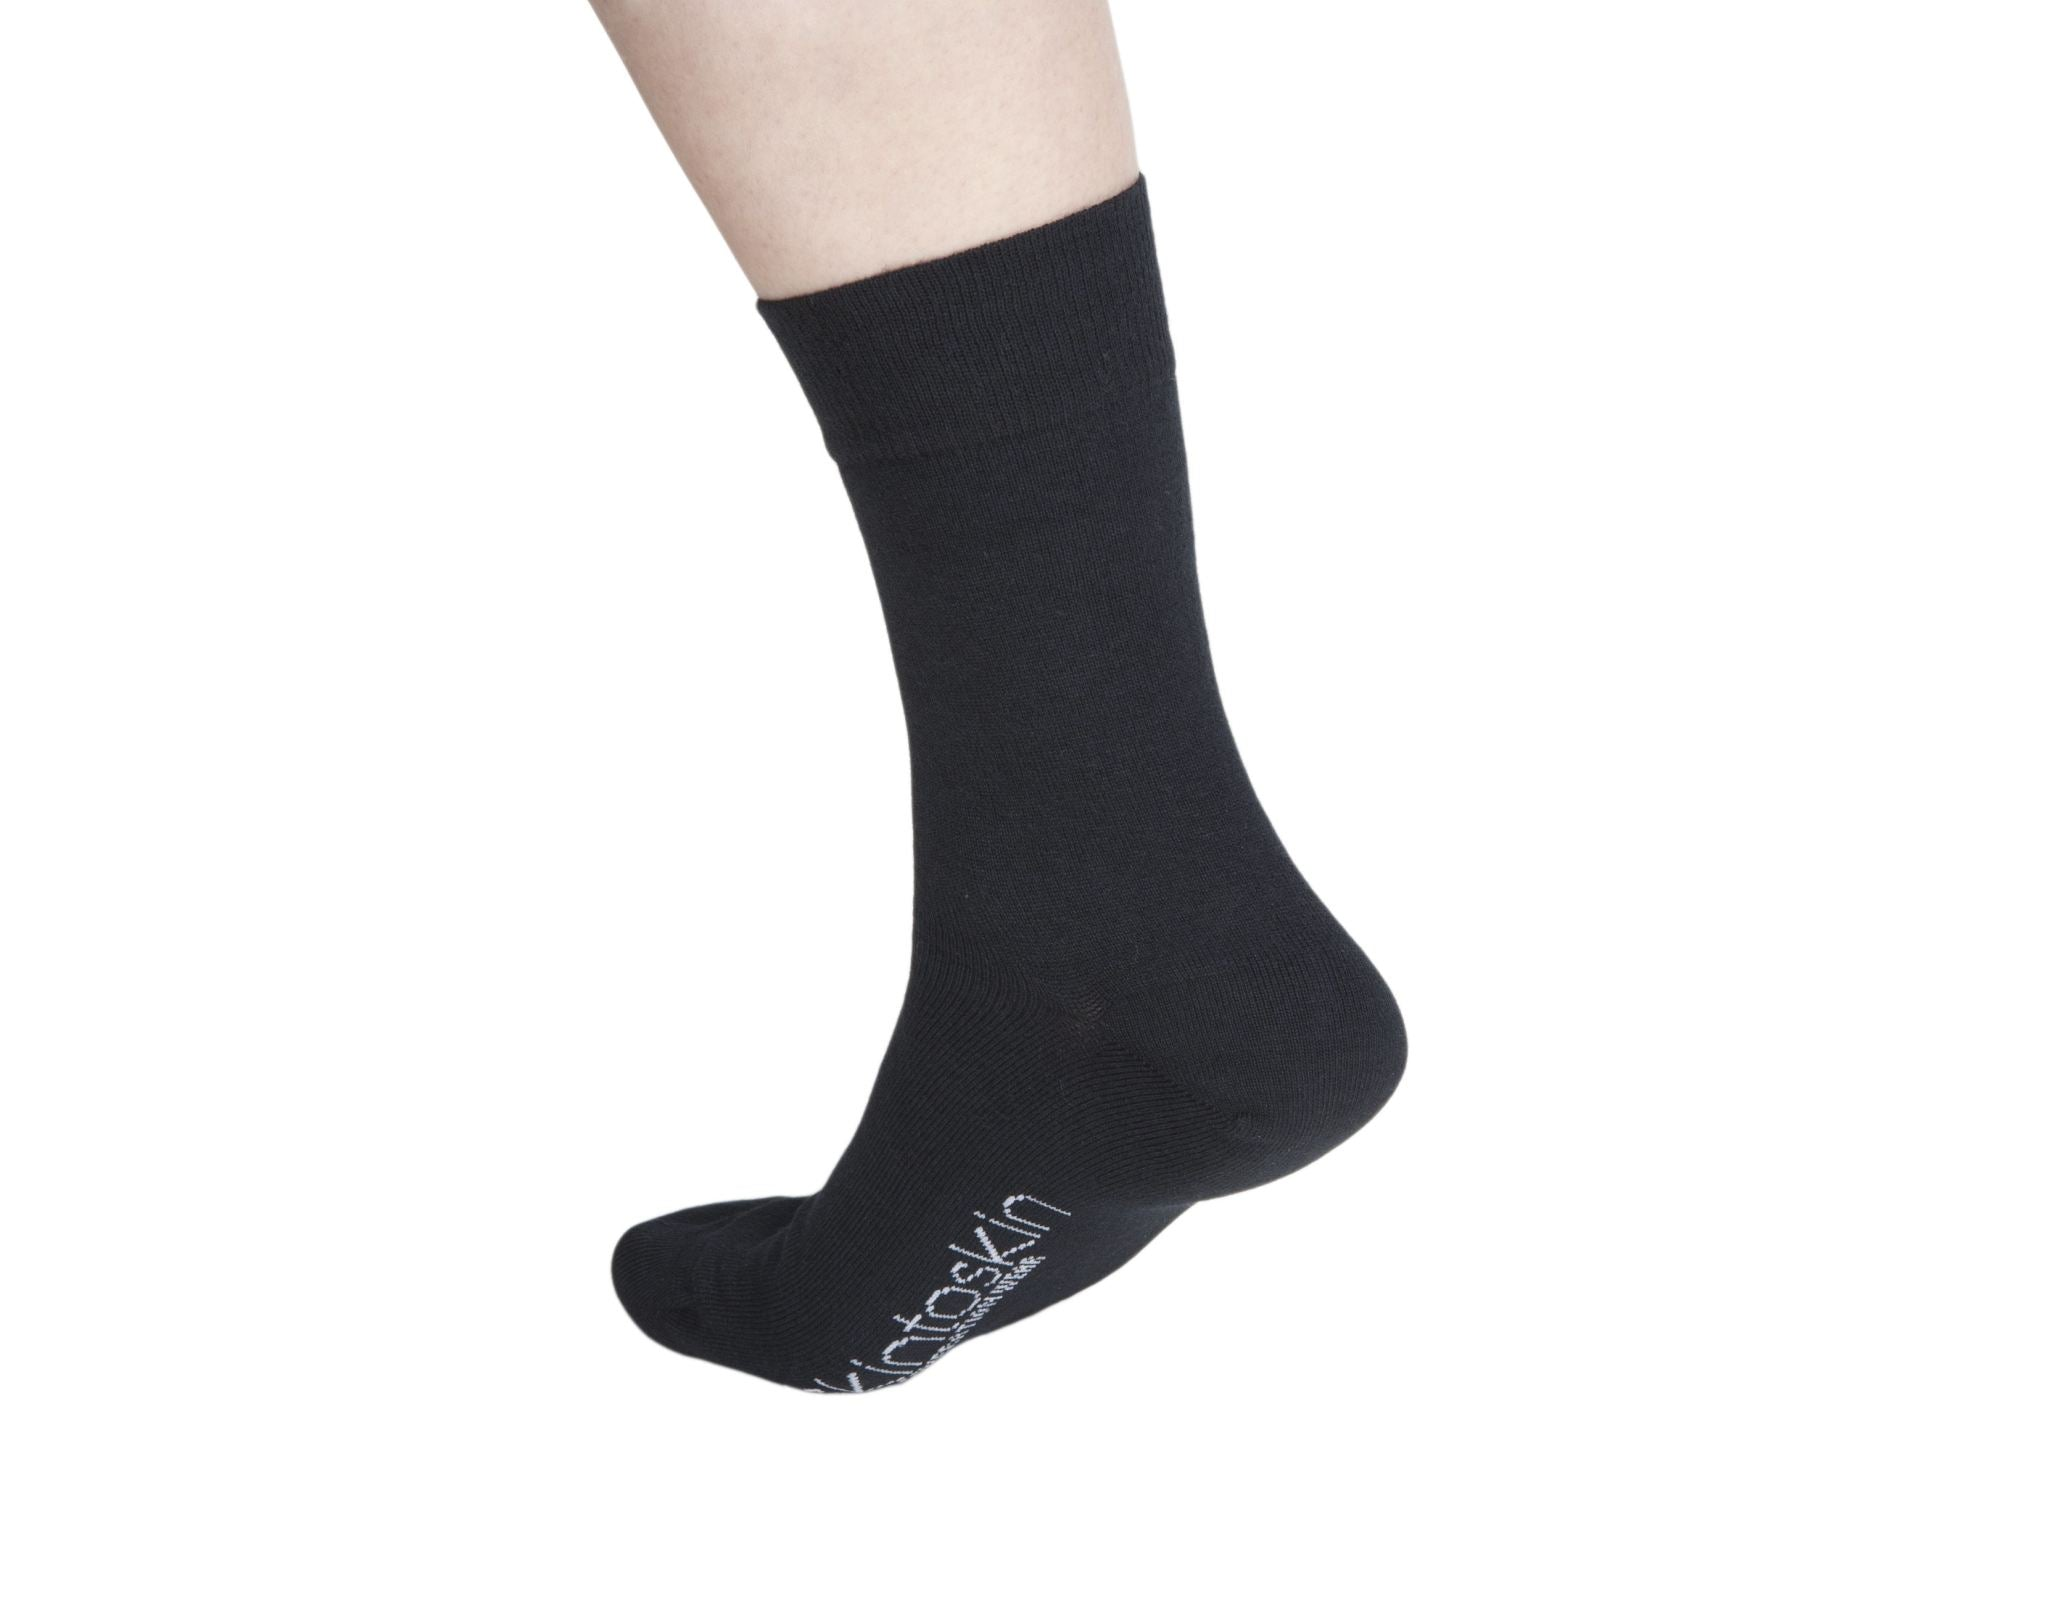 Meias Anti-Micoses 34-36 / Preto